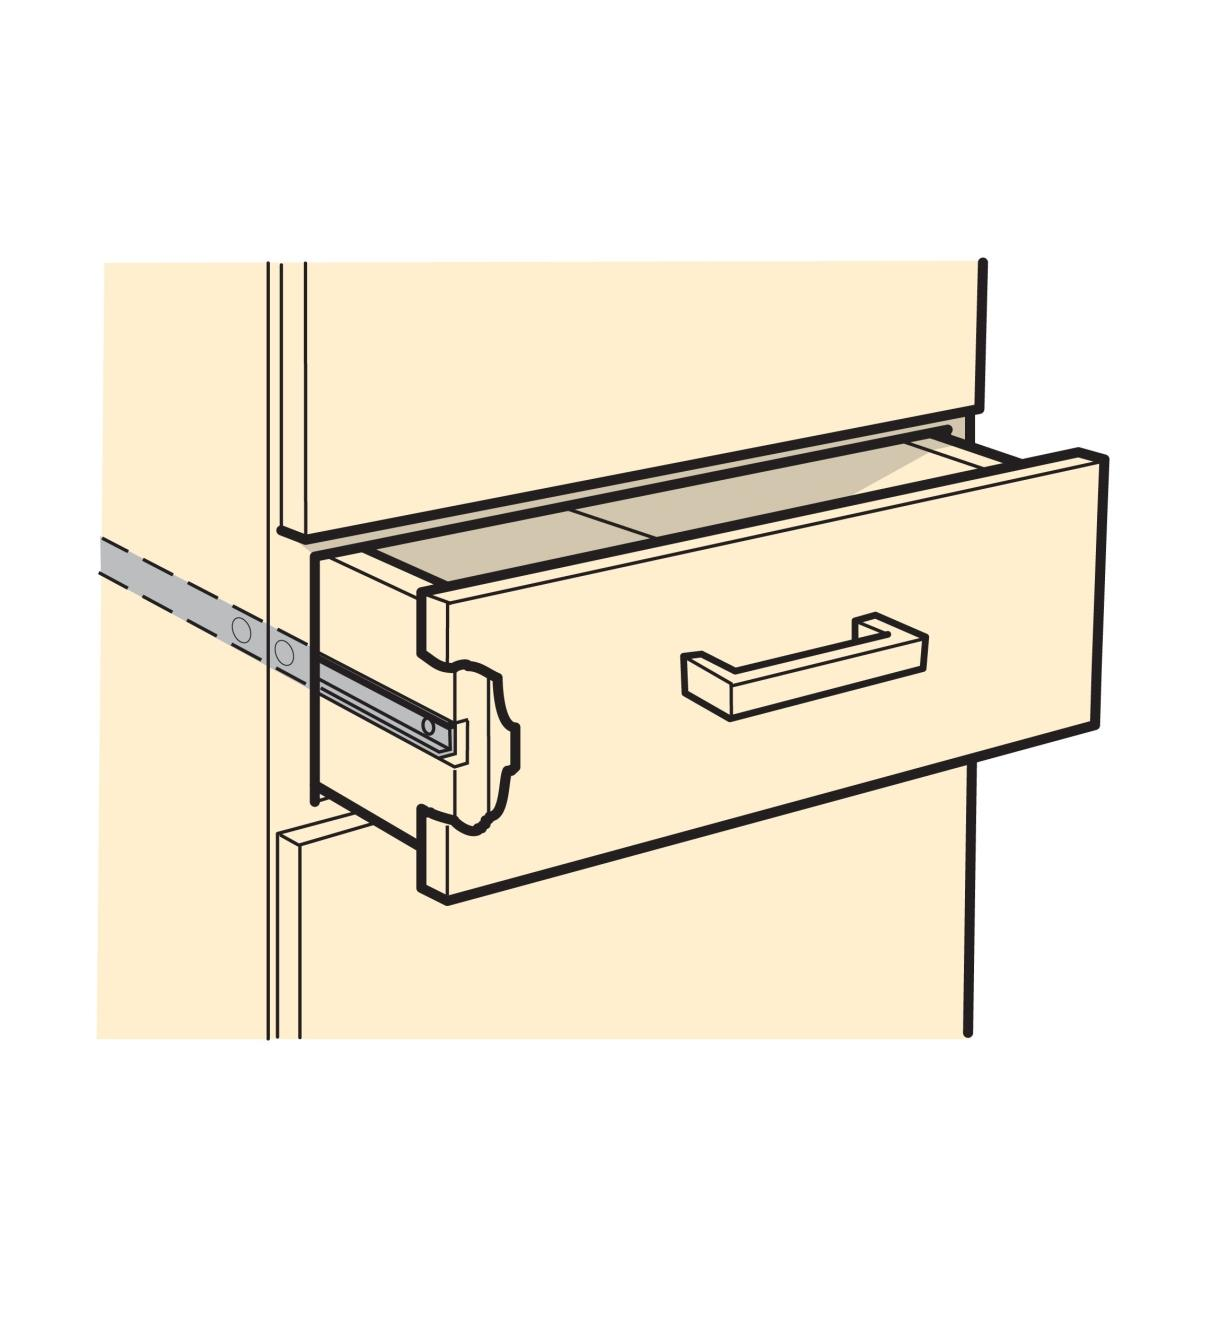 Illustrated example of Slim-Line Drawer Slides installed in a drawer